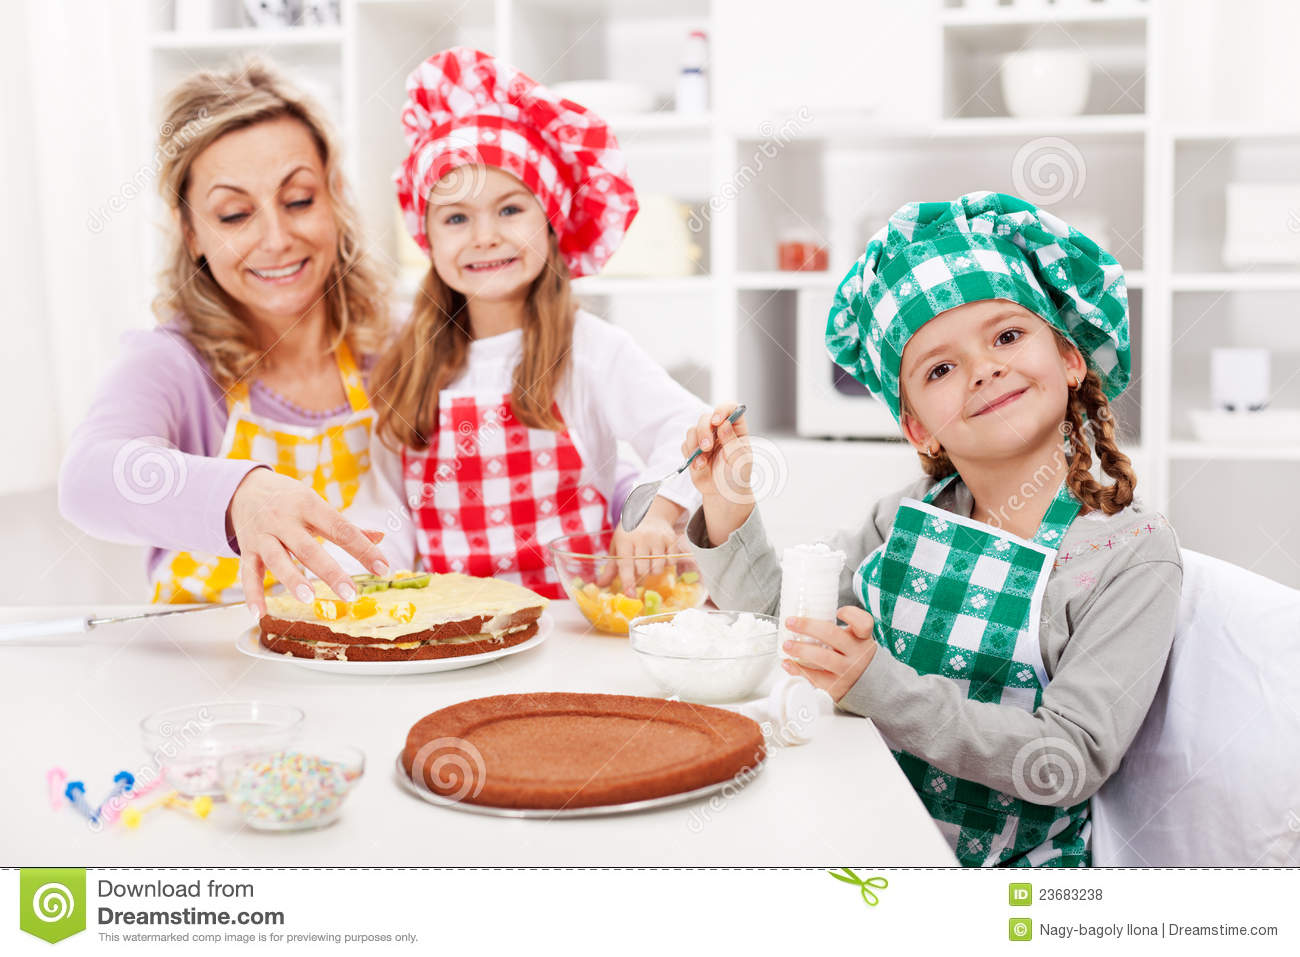 Kids And Their Mother Making A Cake Stock Photo - Image of bowl, home:  23683238